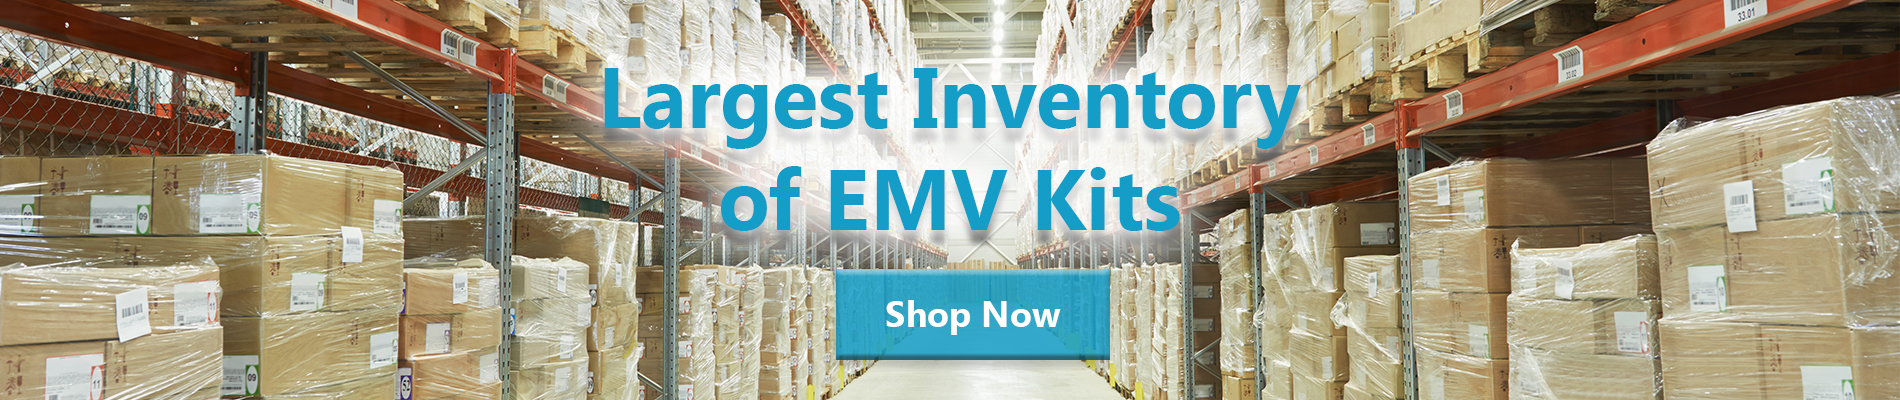 EMV Kits by CORD Financial Services